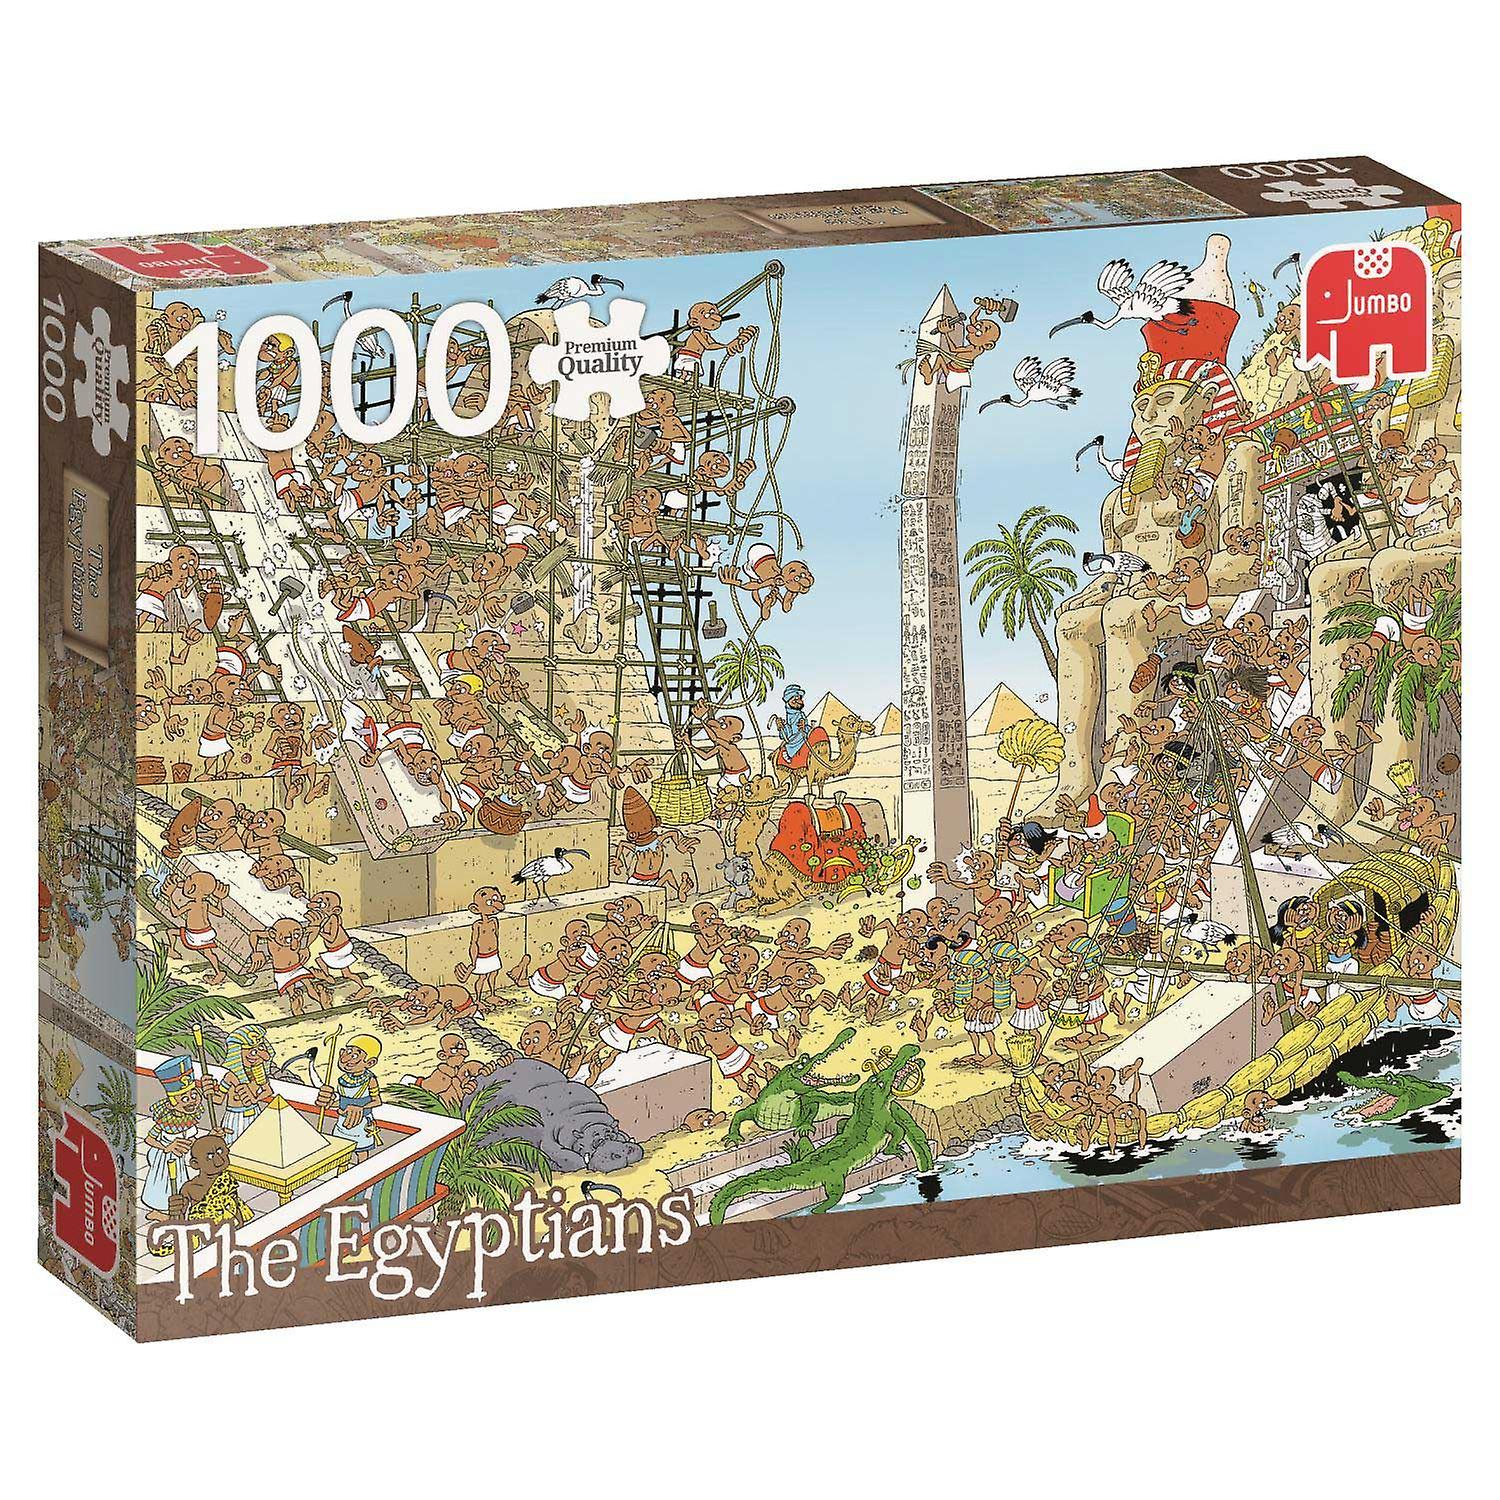 Jumbo Pieces Of History The Egyptians Premium Jigsaw Puzzle (1000 Pieces)